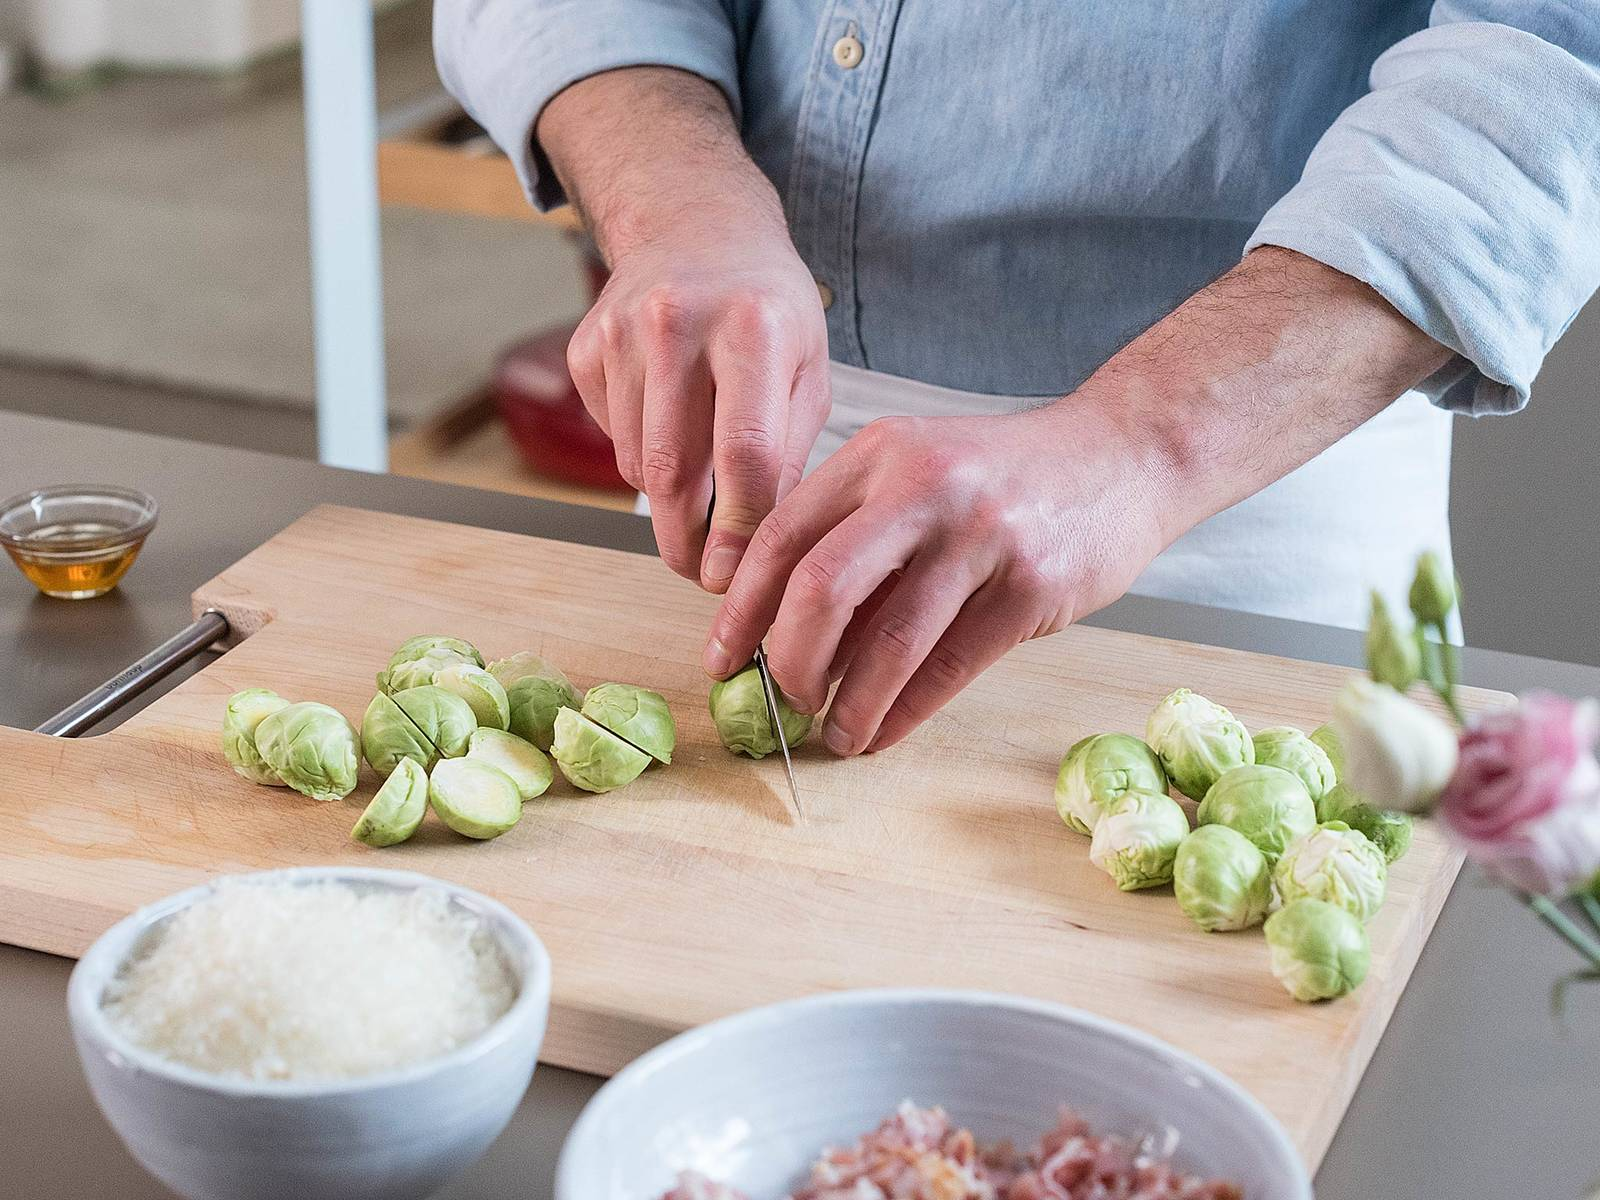 Bring large pot of salted water to a boil. Add pasta and cook for approx. 8 min., or until al dente, according to package instructions. Meanwhile, clean and peel outside leaves from Brussels sprouts, then halve.